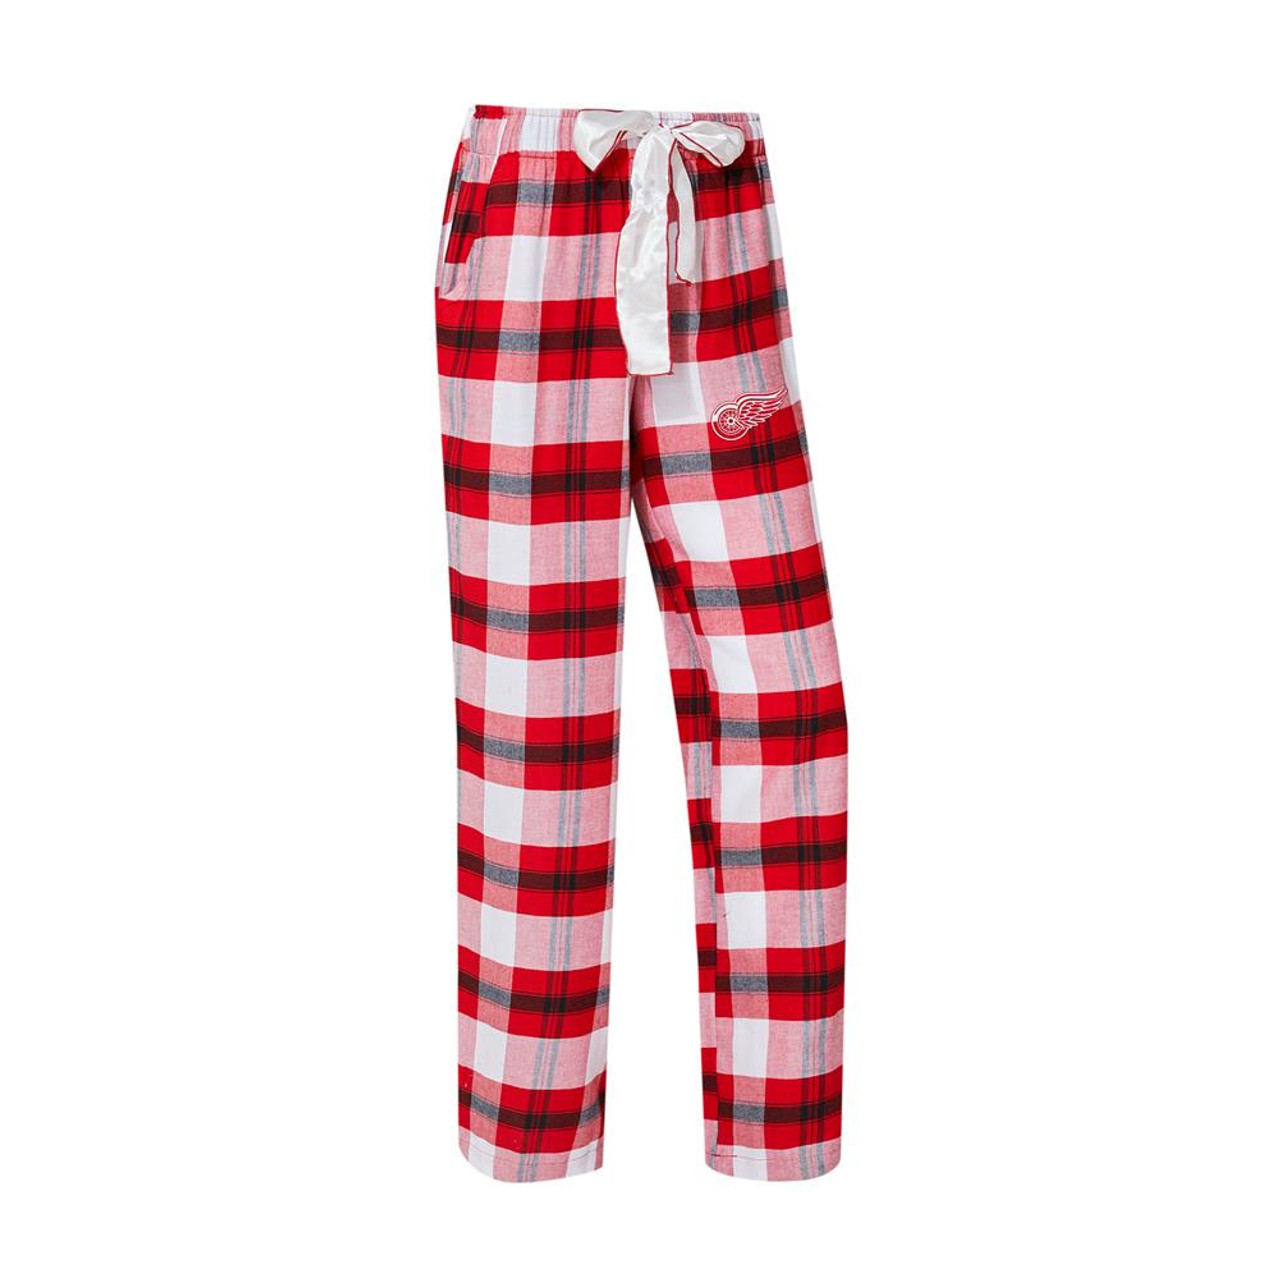 Detroit Red Wings Women's Flannel Pajamas Plaid PJ Bottoms